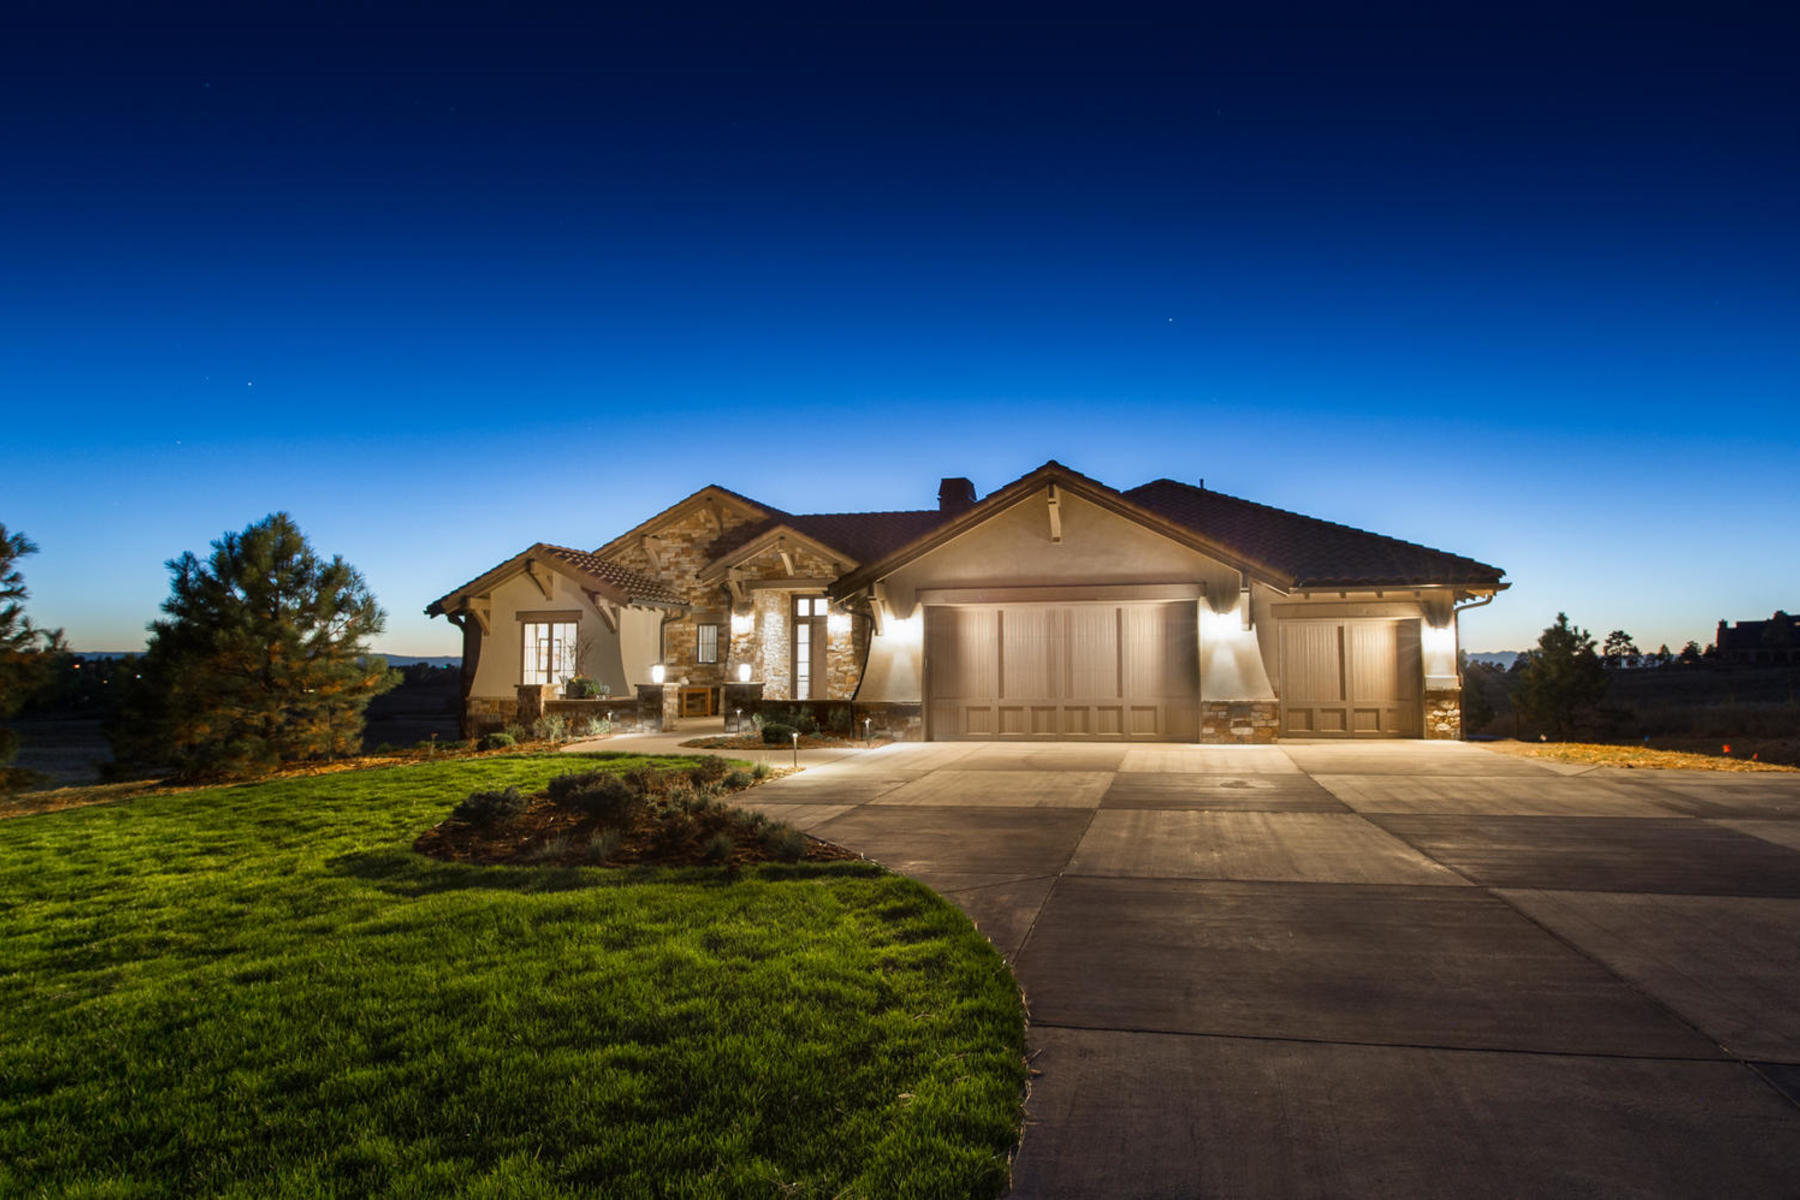 Casa Unifamiliar por un Venta en Buy a model home at Colorado Golf Club 7221 Prairie Star Ct, Colorado Golf Club, Parker, Colorado, 80134 Estados Unidos